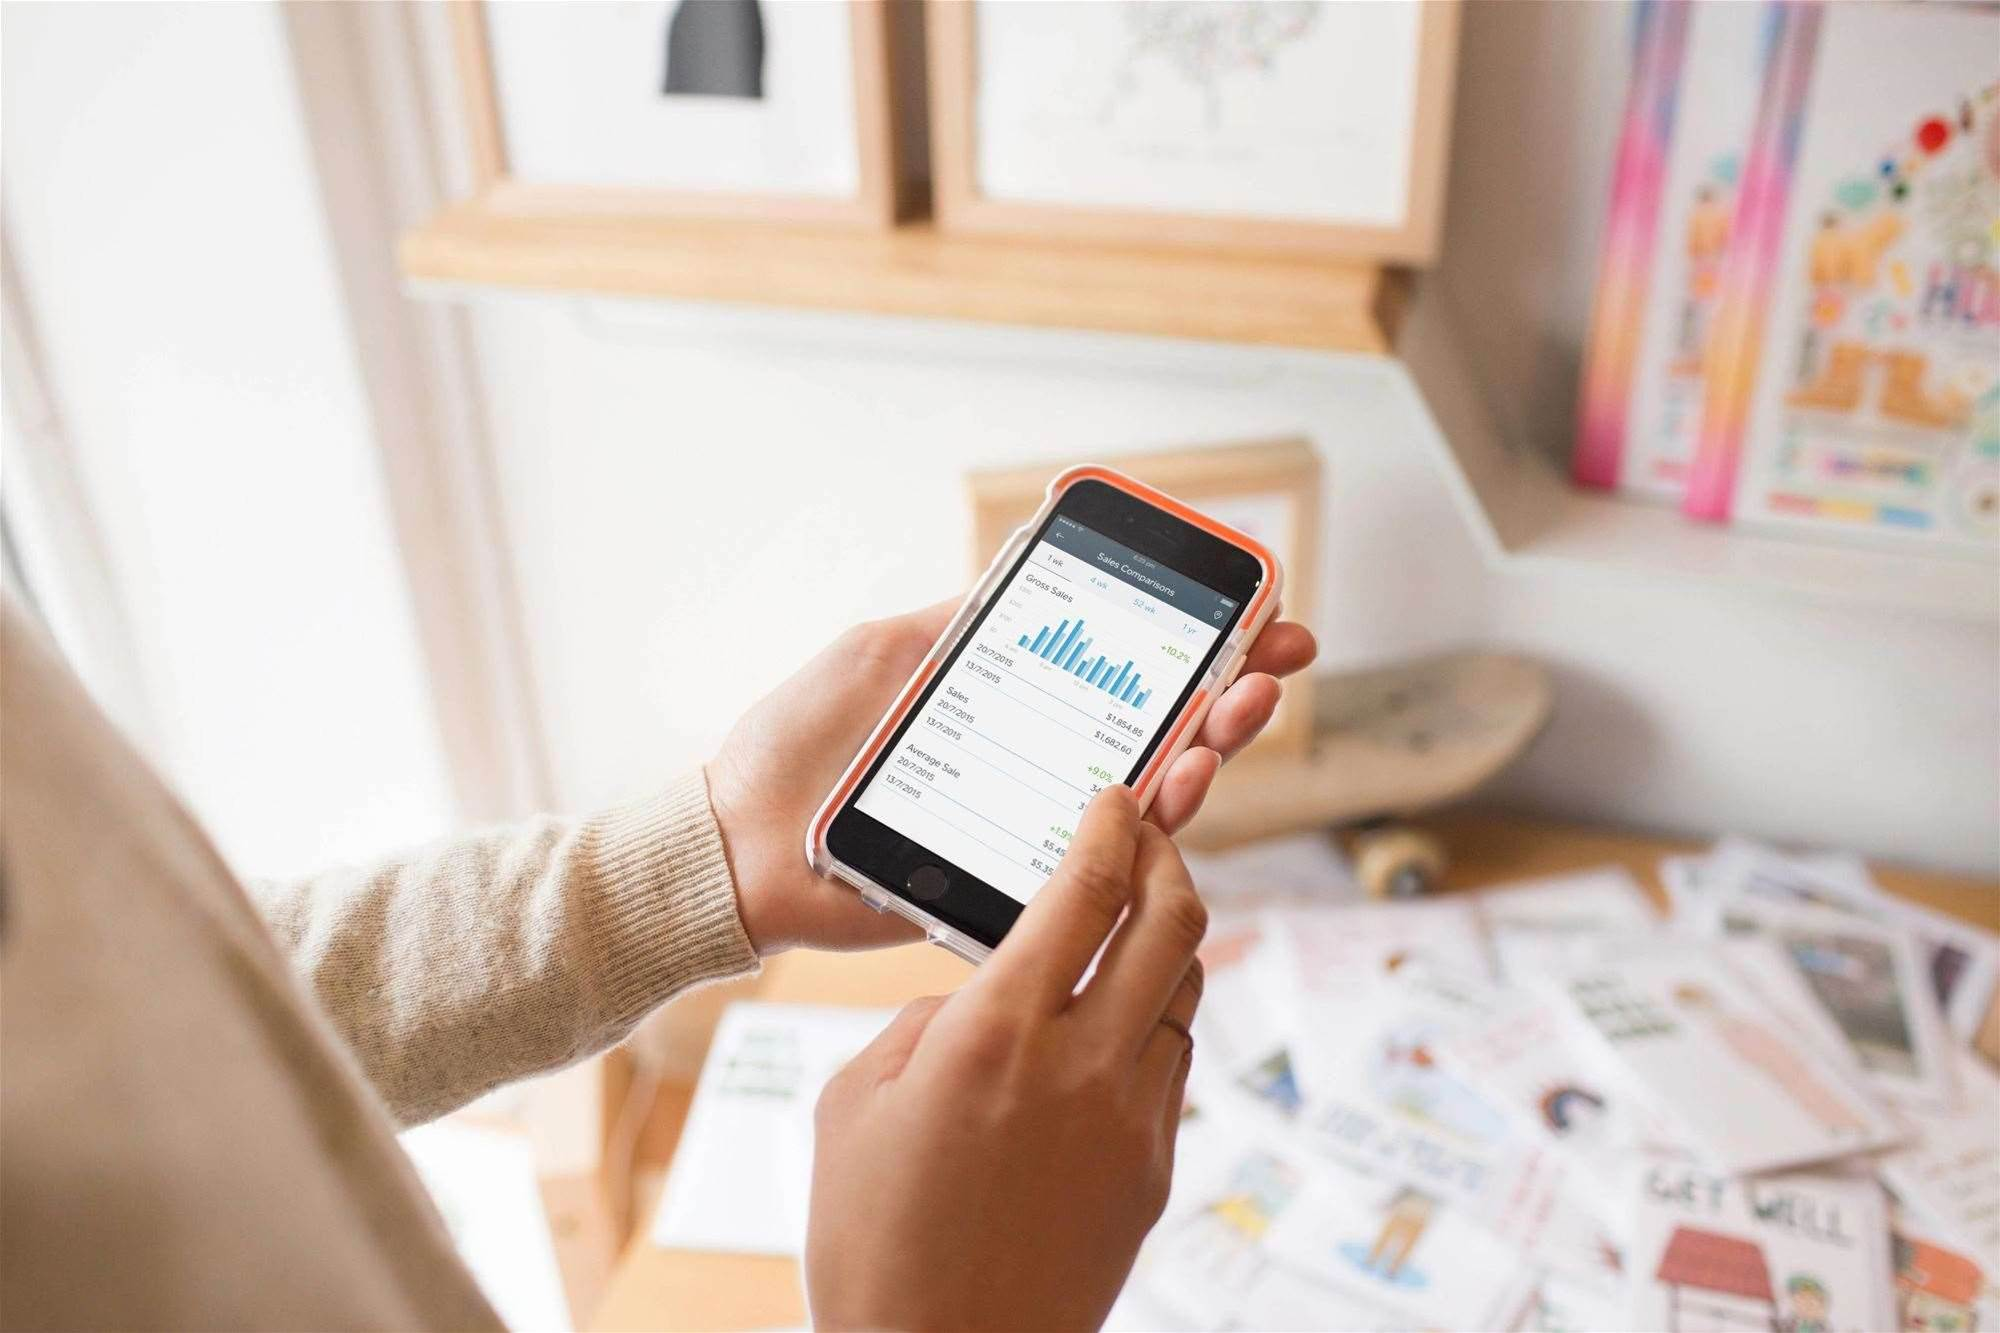 Square adds Dashboard app